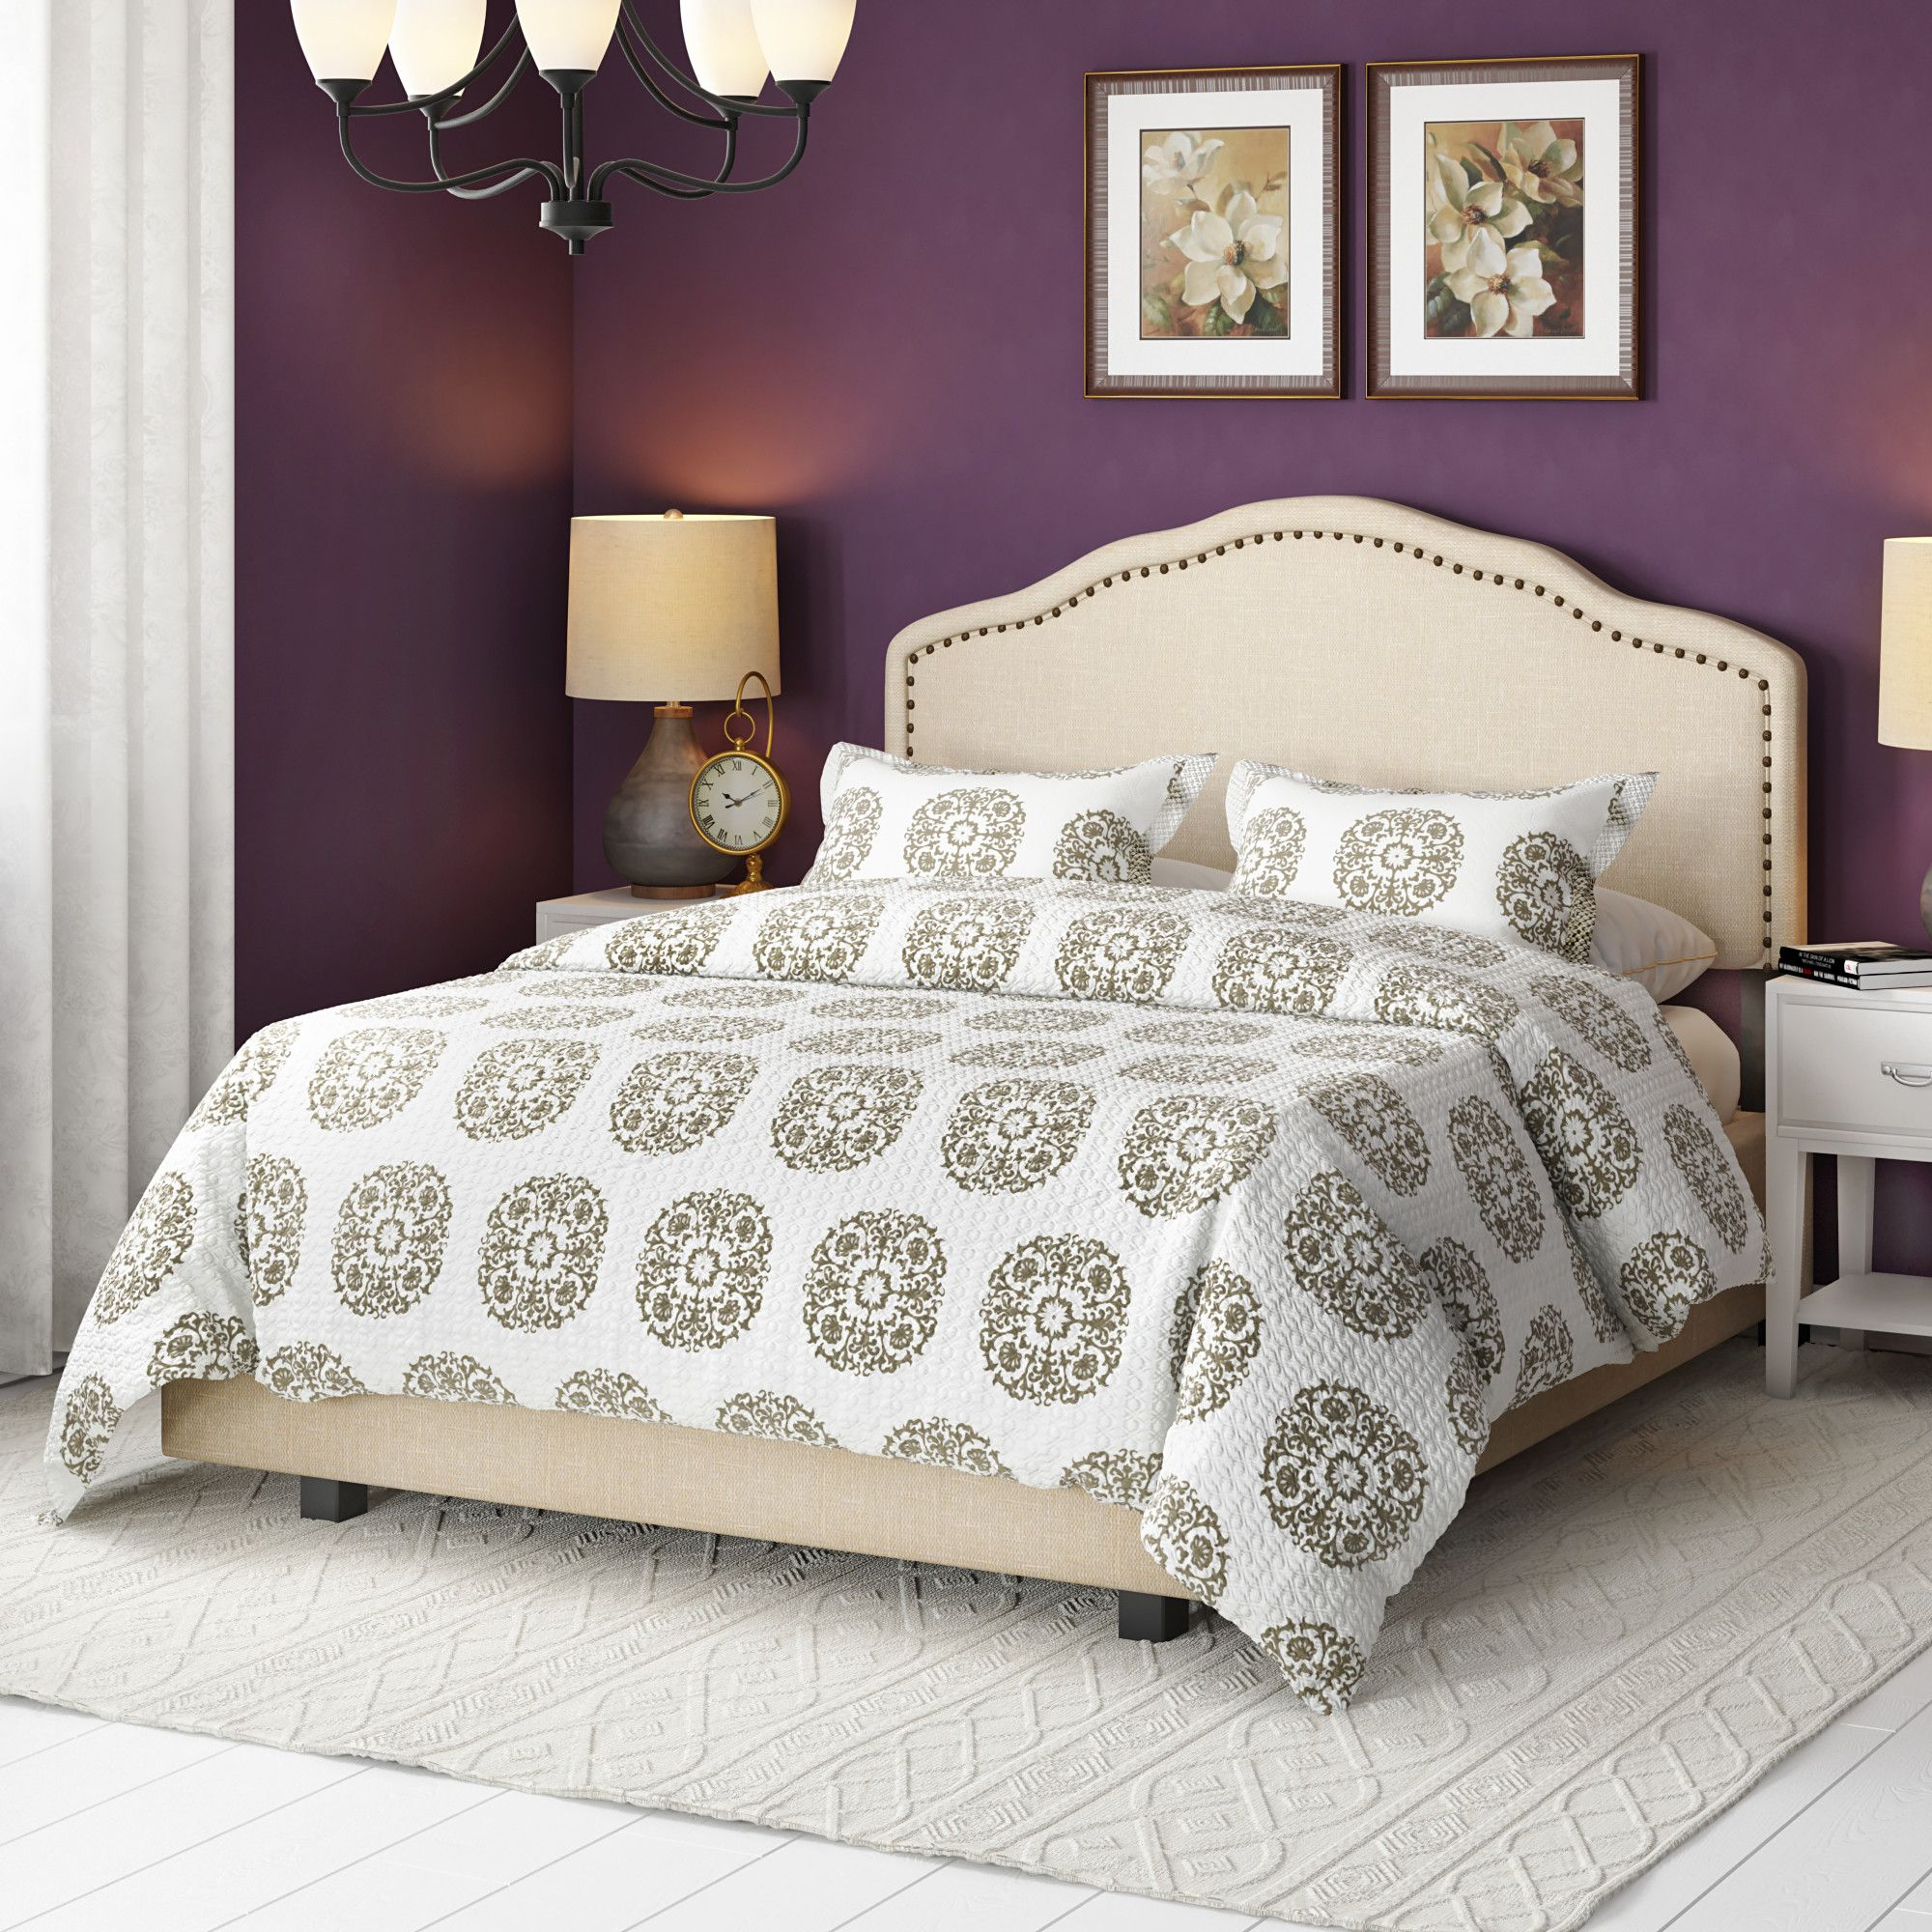 Boston Upholstered Panel Bed Bed, Panel bed